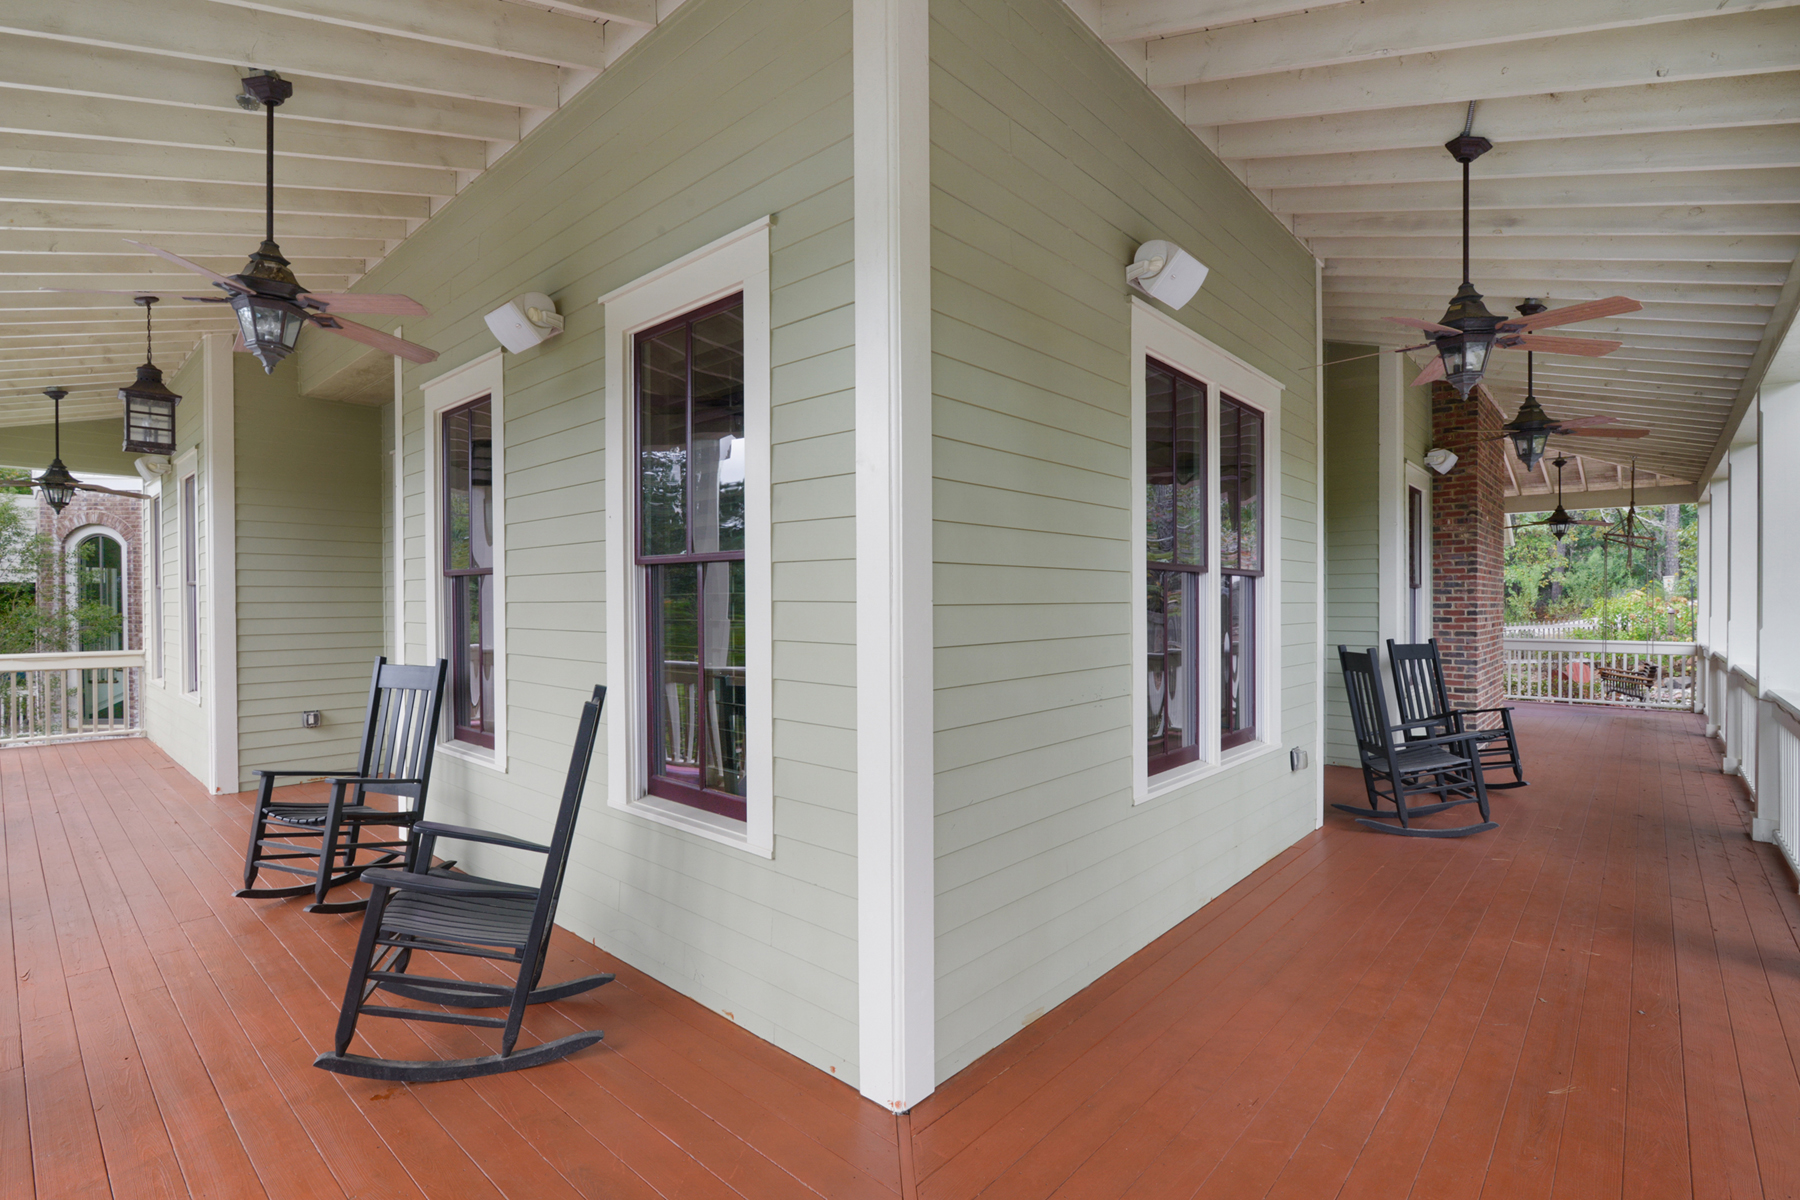 Additional photo for property listing at Upscale Serenbe Farmhouse-Style Home 10723 Serenbe Lane Chattahoochee Hills, Georgia 30268 États-Unis